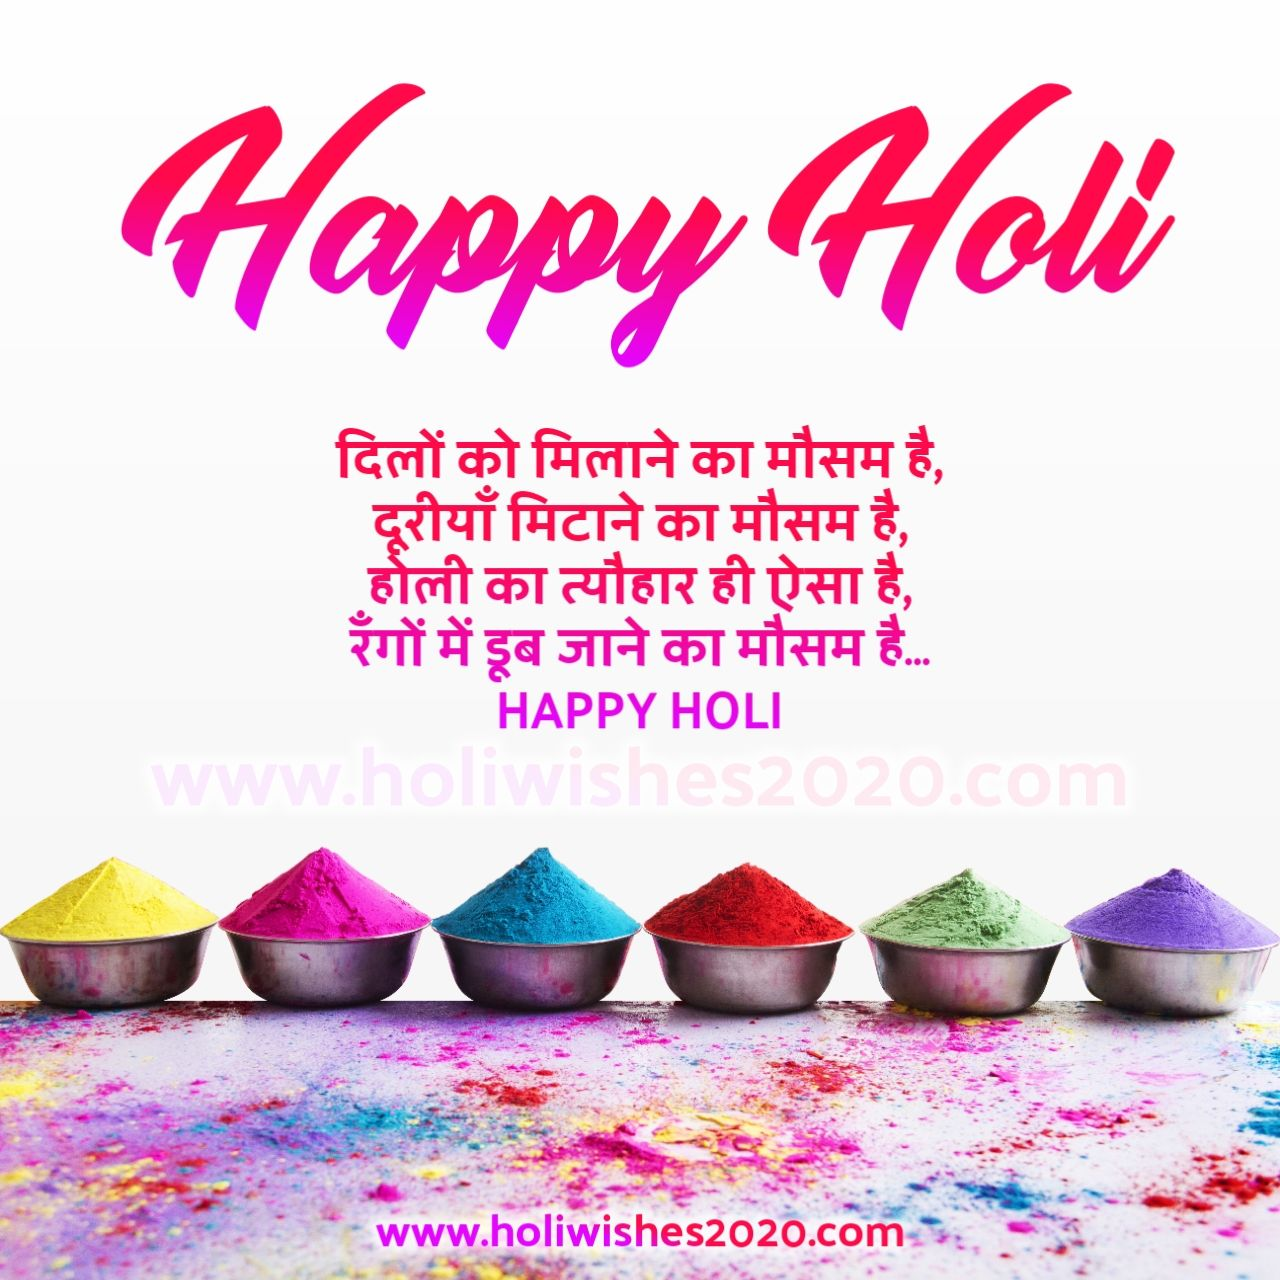 Happy Holi 2020 Wishes, Quotes, Images, Messages, SMS in